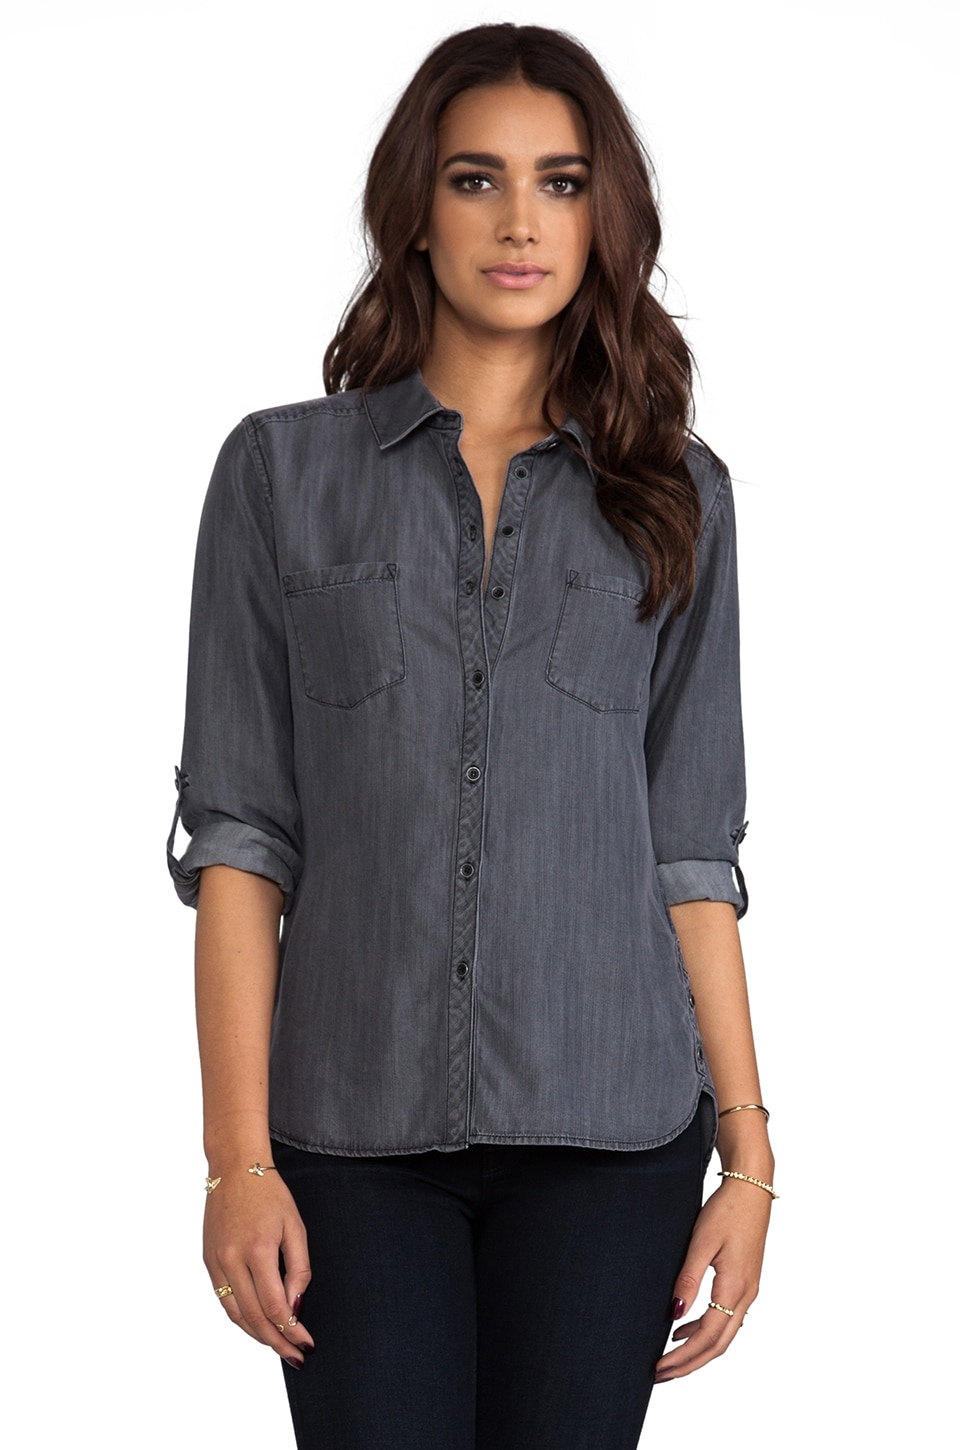 C&C California Textured Chambray Two Pocket Shirt in Black